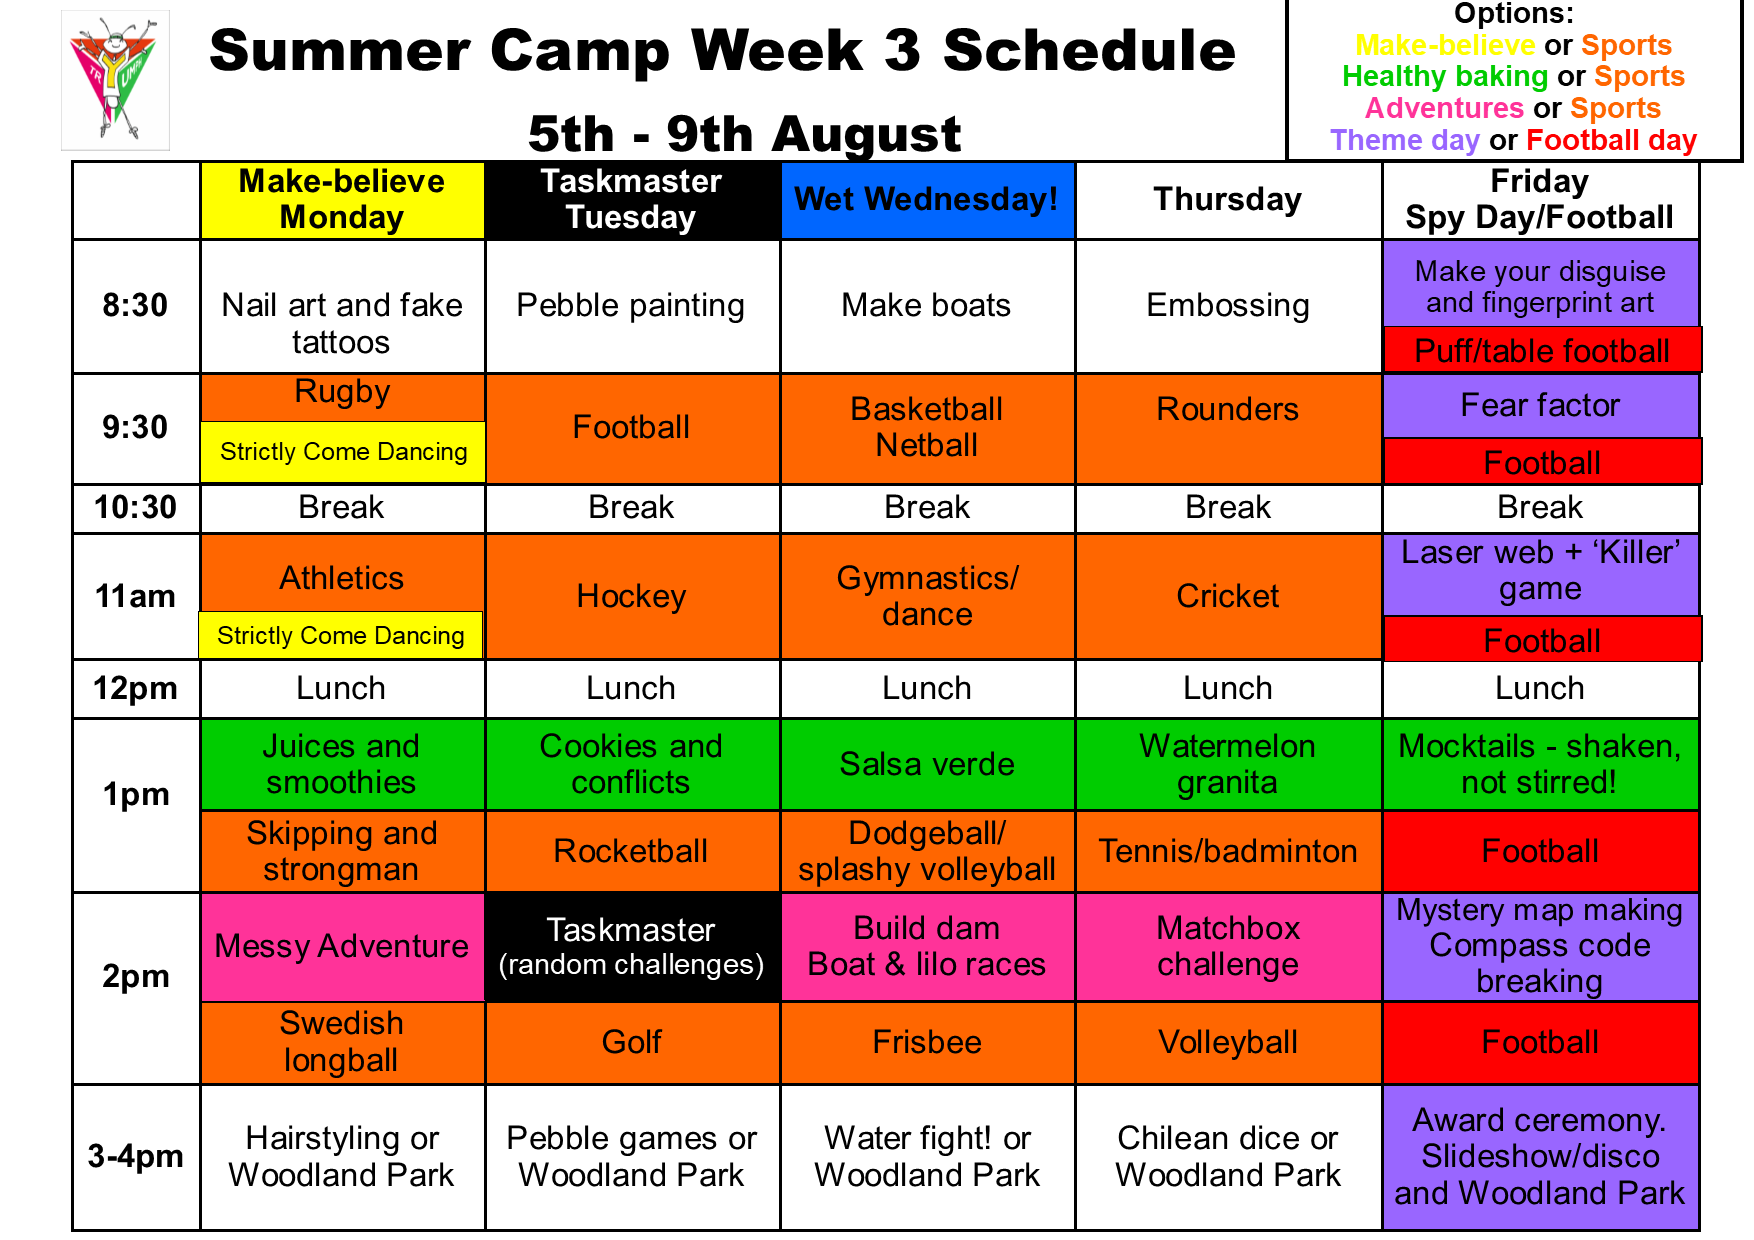 Summer camp week 3